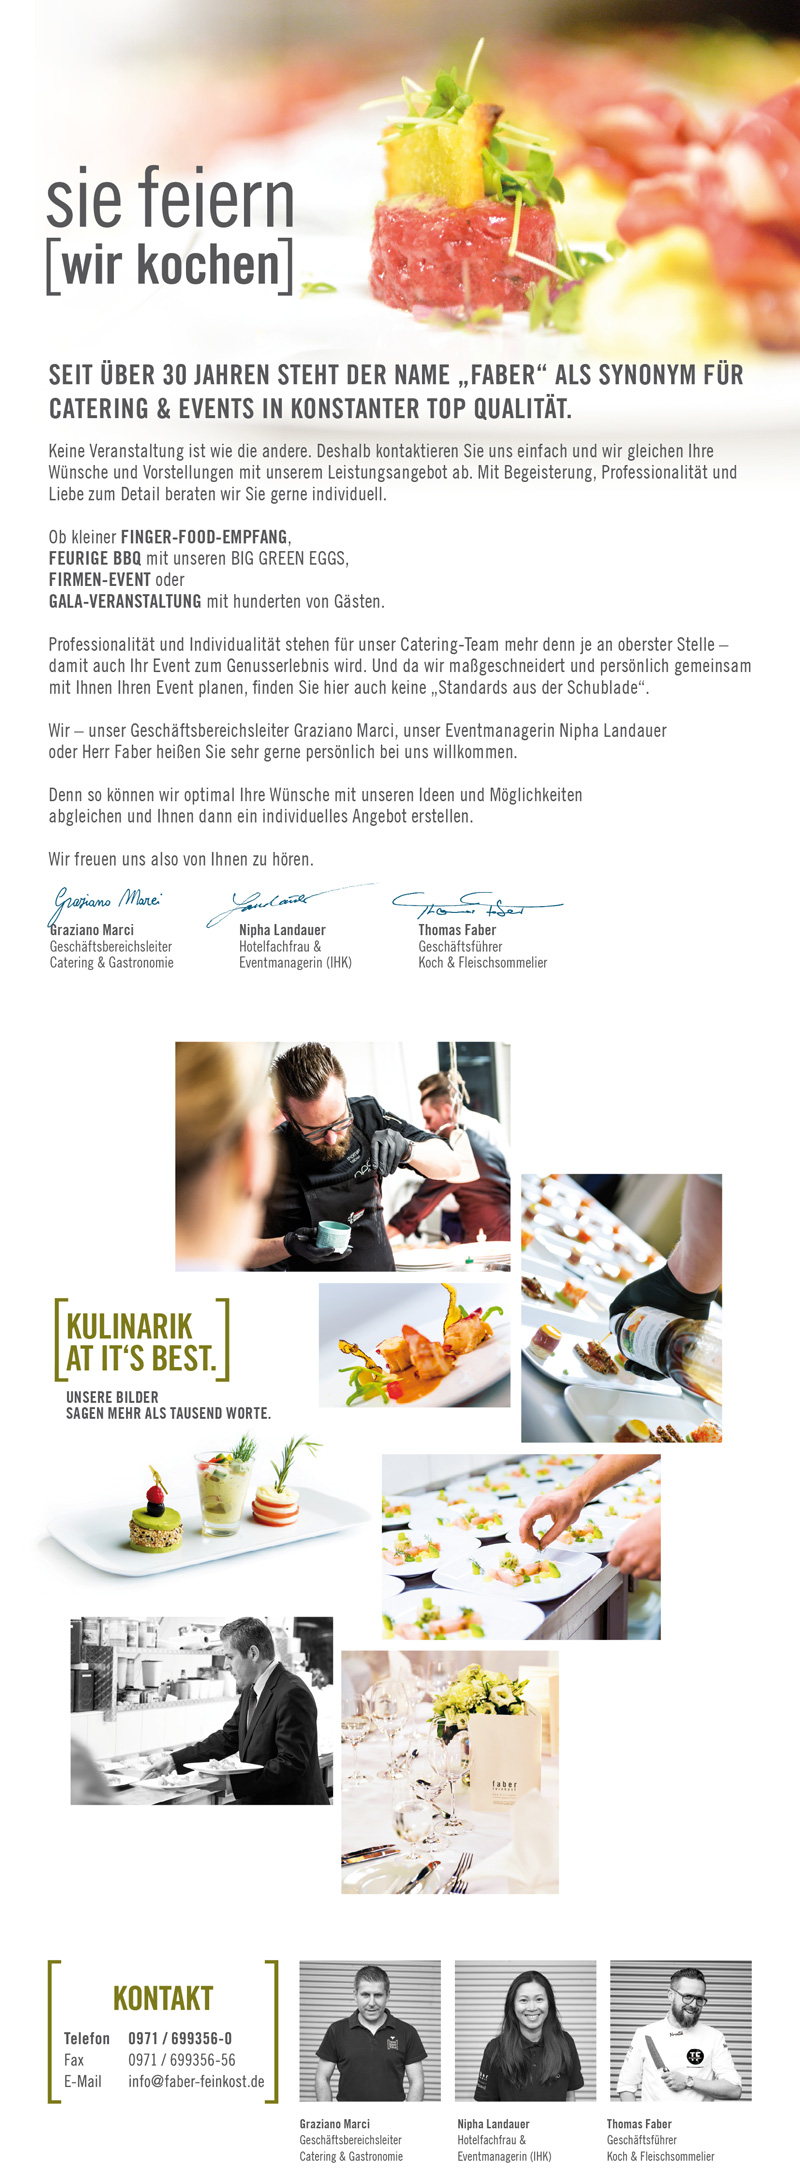 faber-feinkost-catering-3